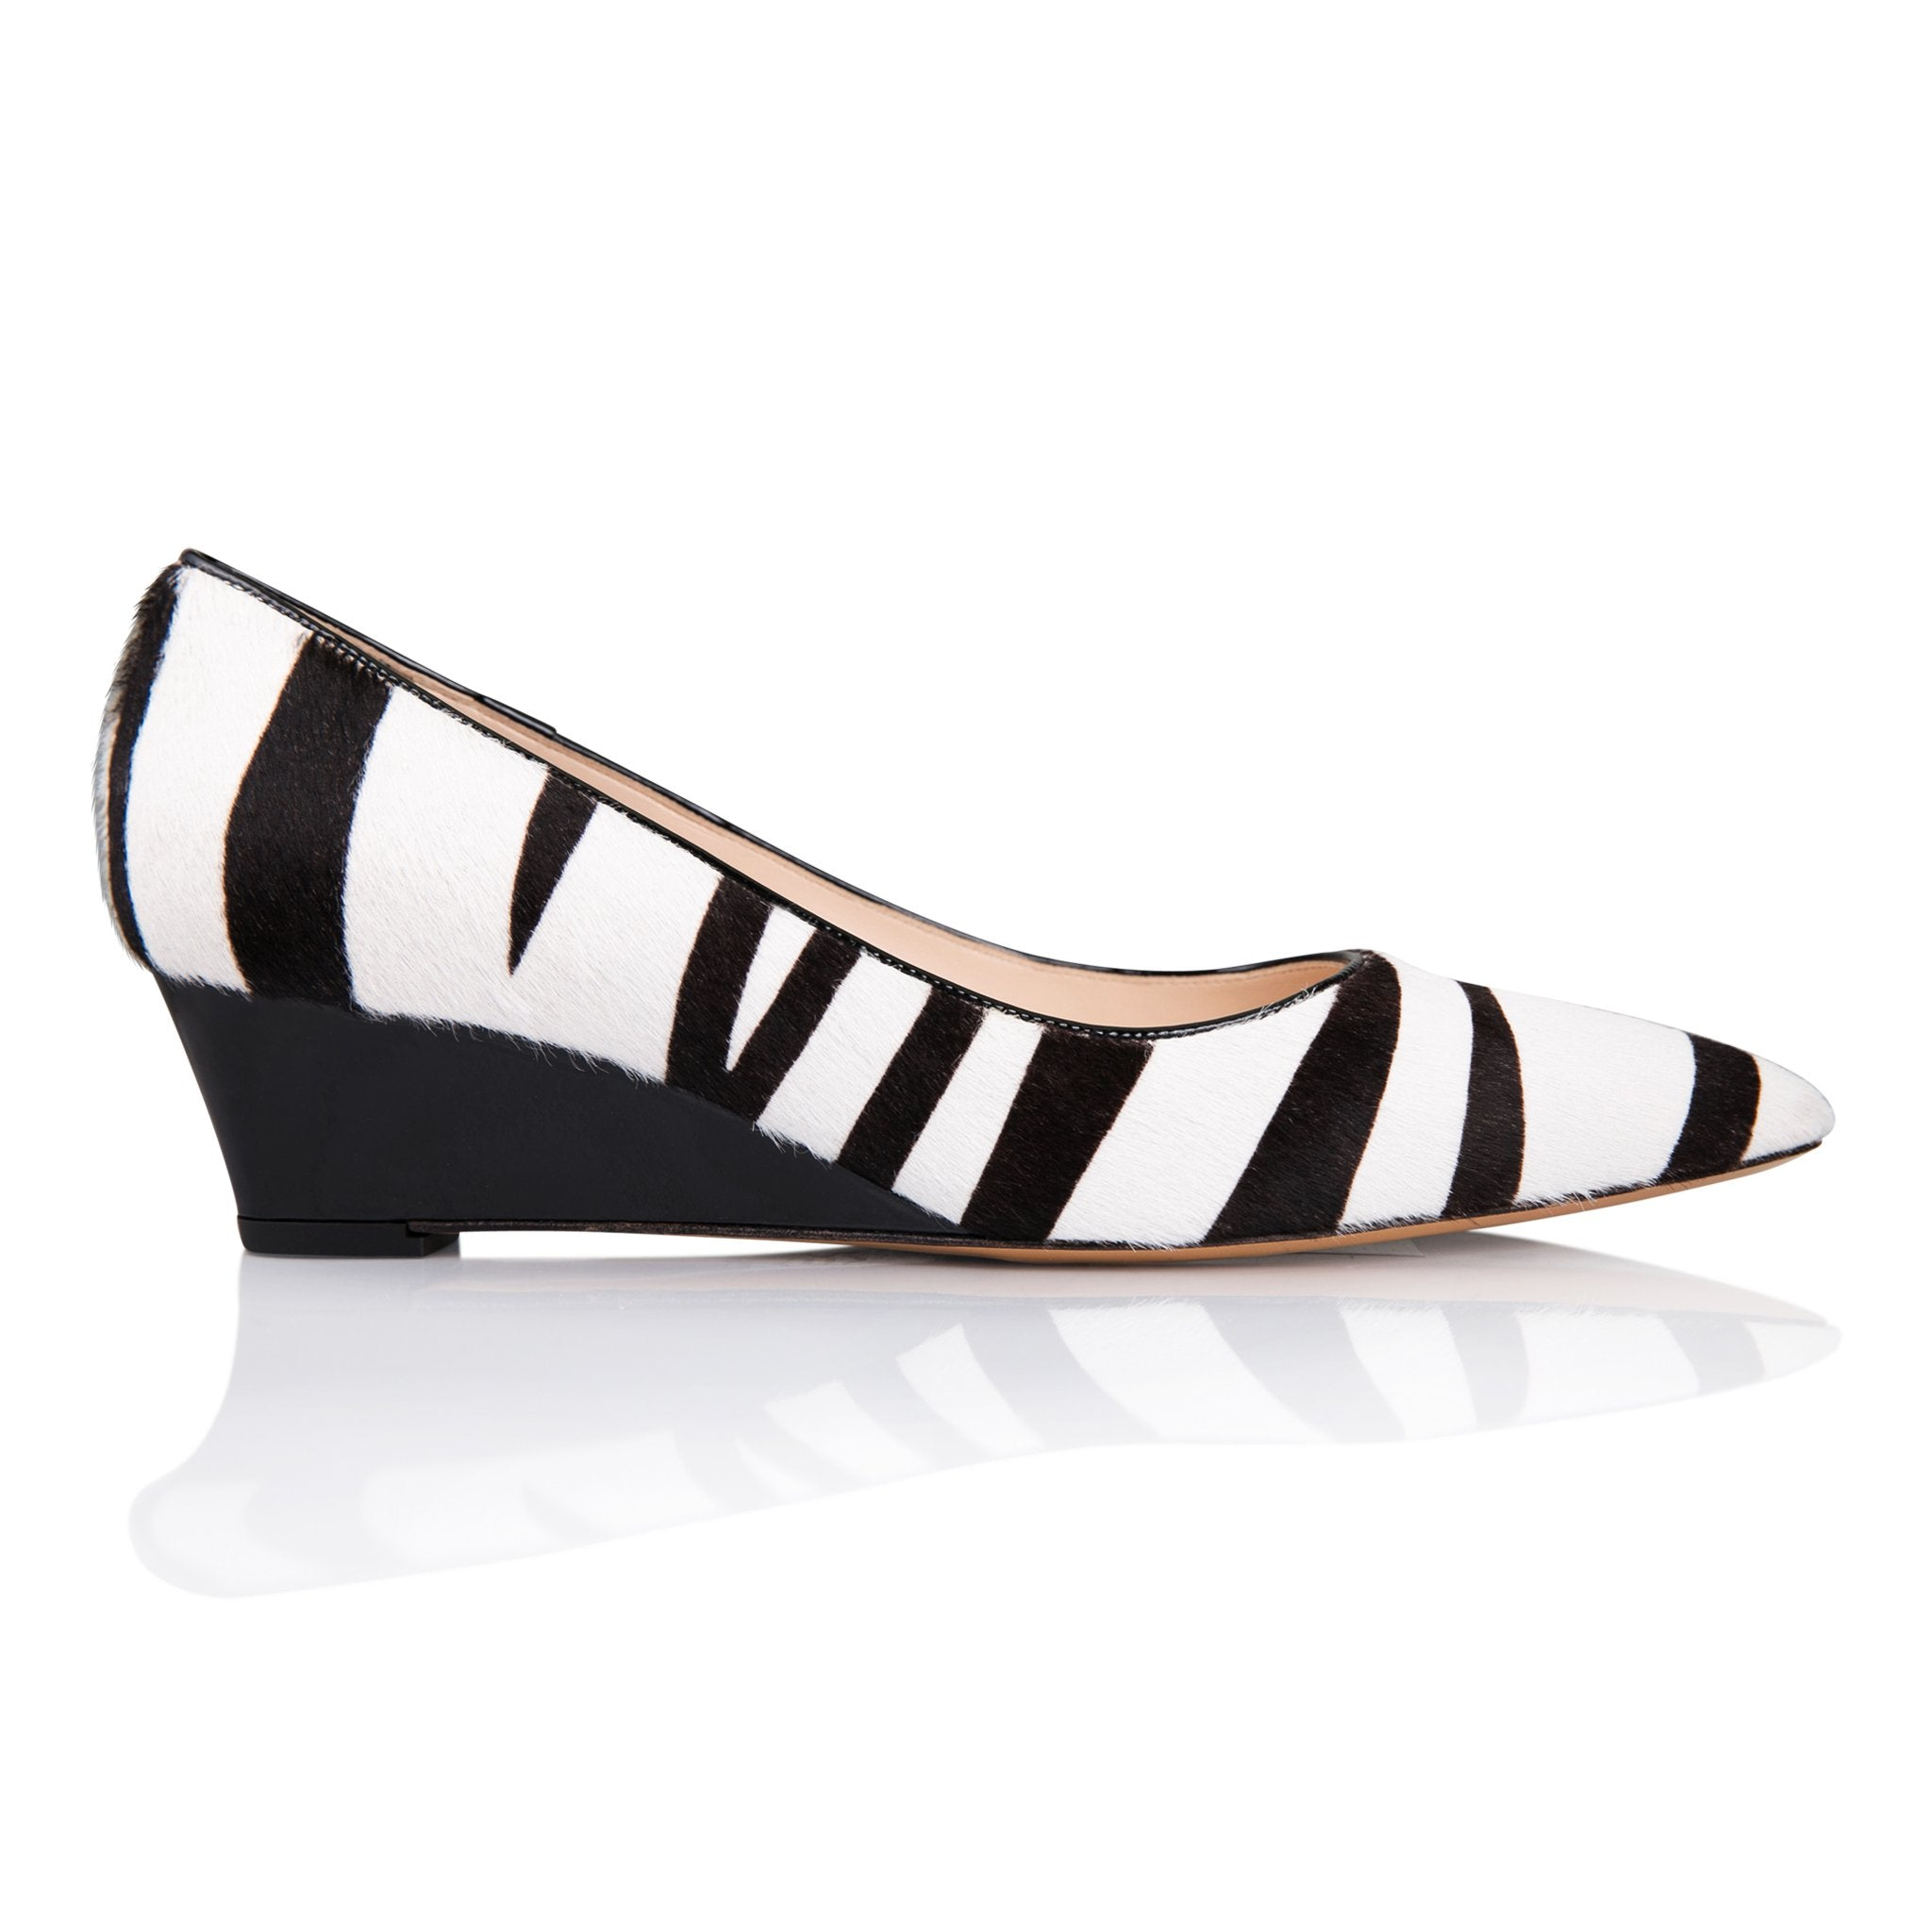 TRENTO - Calf Hair Zebra + Patent Nero, VIAJIYU - Women's Hand Made Sustainable Luxury Shoes. Made in Italy. Made to Order.